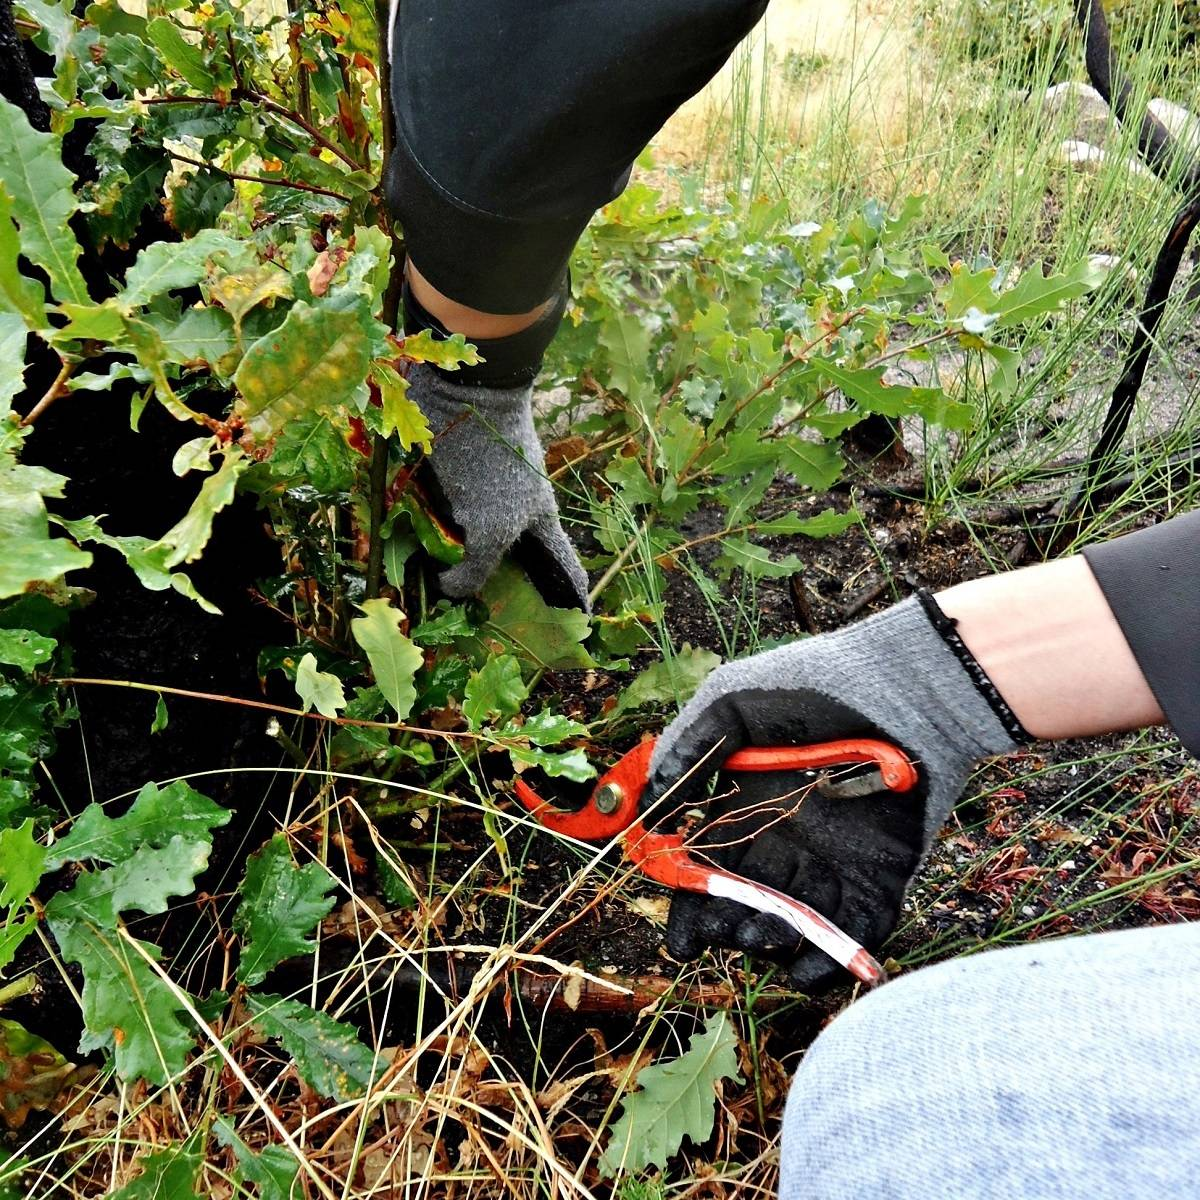 A person pruning a young oak tree to promote growth